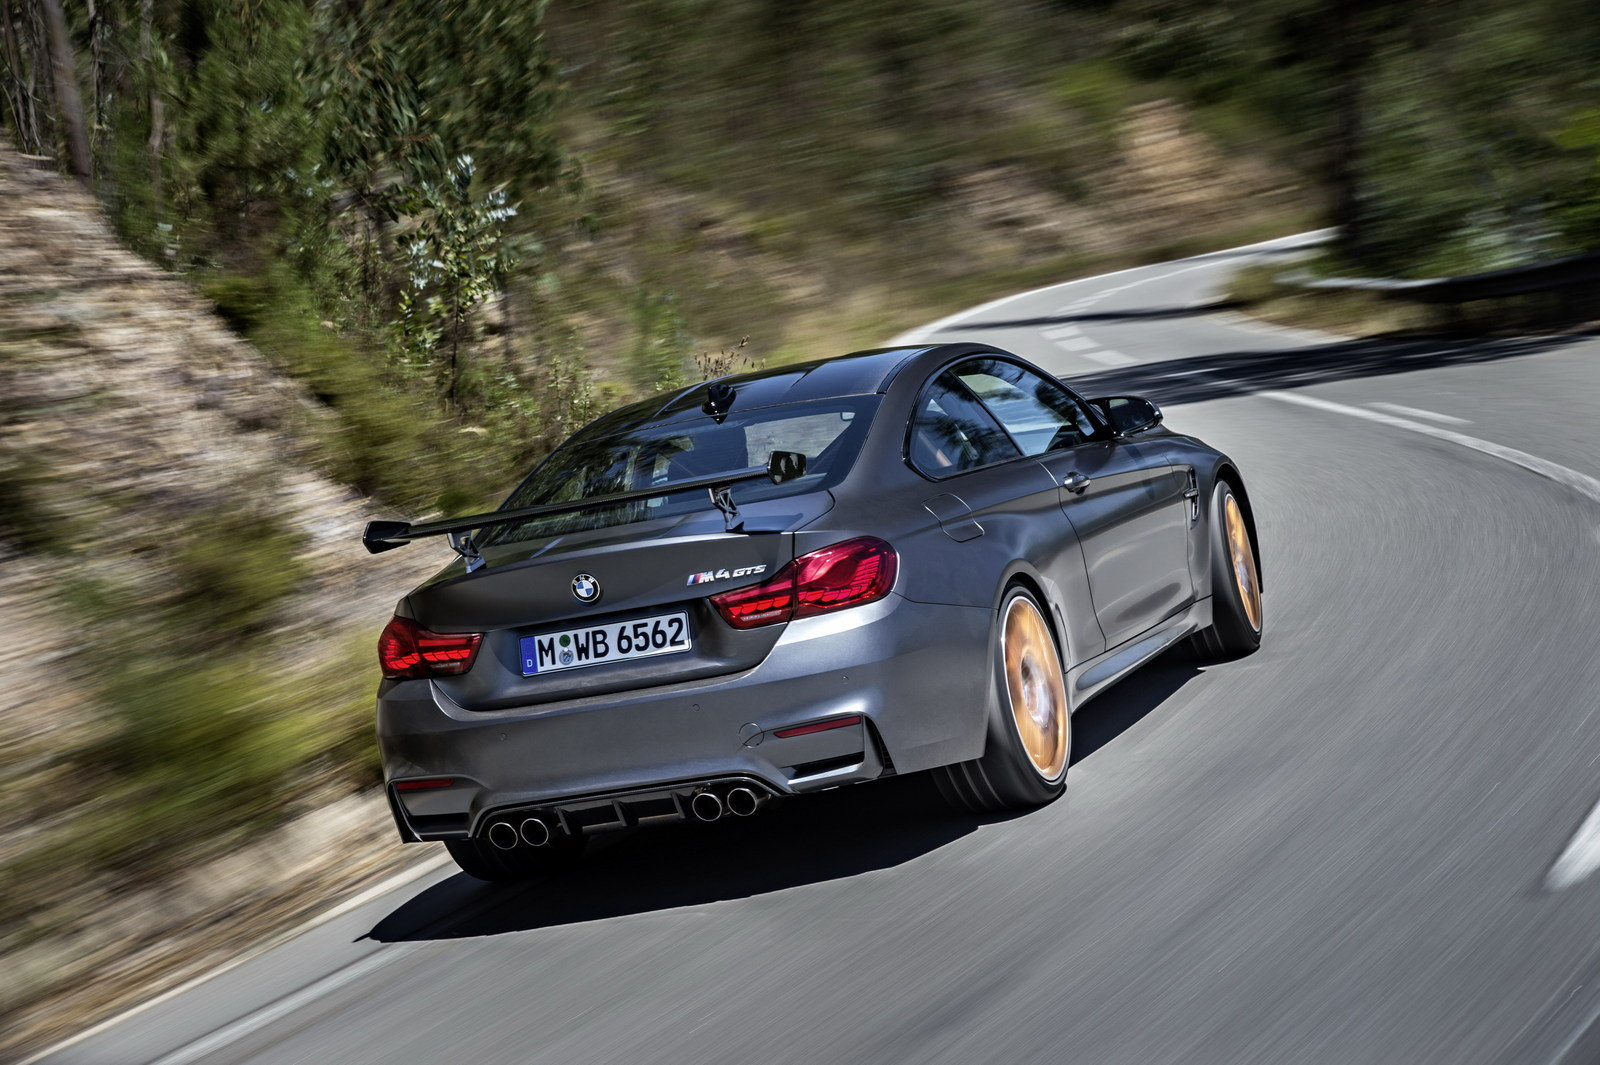 2016 bmw m4 gts picture 649583 car review top speed. Black Bedroom Furniture Sets. Home Design Ideas